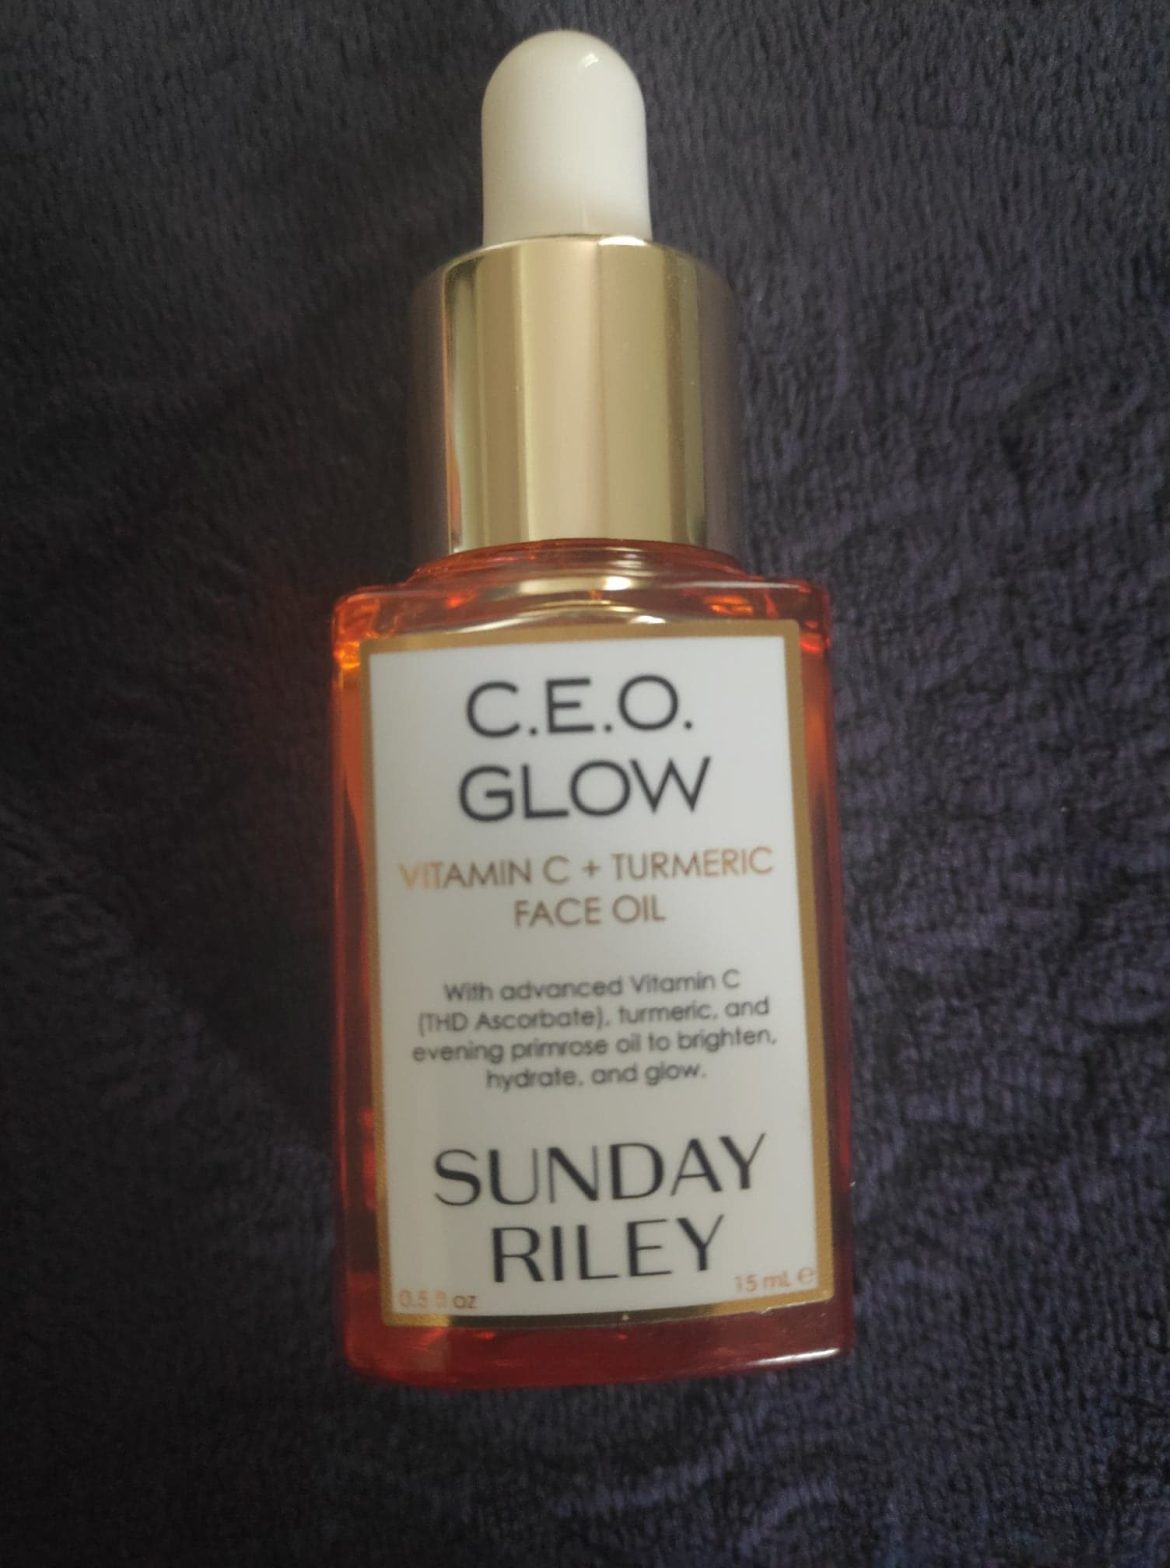 CEO Glow vit c and turmeric face oil by Sunday Riley